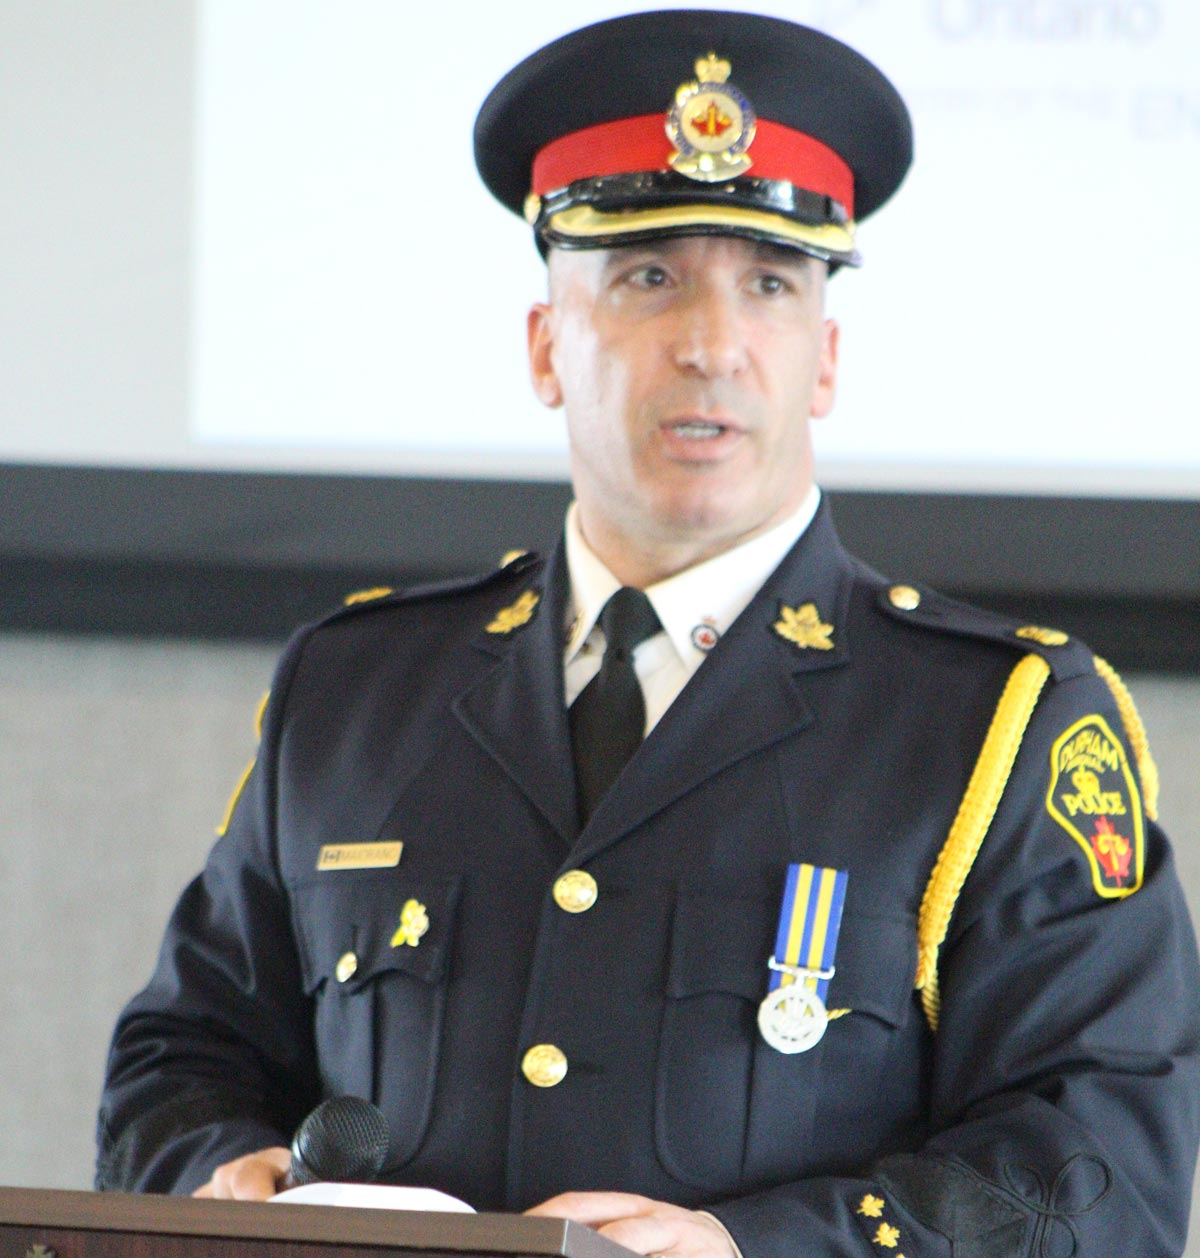 Superintendent Joe Maiorana of the Durham police says that to date, there have been 46 drivers in Durham Region charged with street racing offences in 2016, putting numbers well on track to surpass the 84 nabbed in 2015. Maiorana says the increase can be attributed to the better weather Durham saw this winter, meaning the streets were open to those wanting to race illegally.